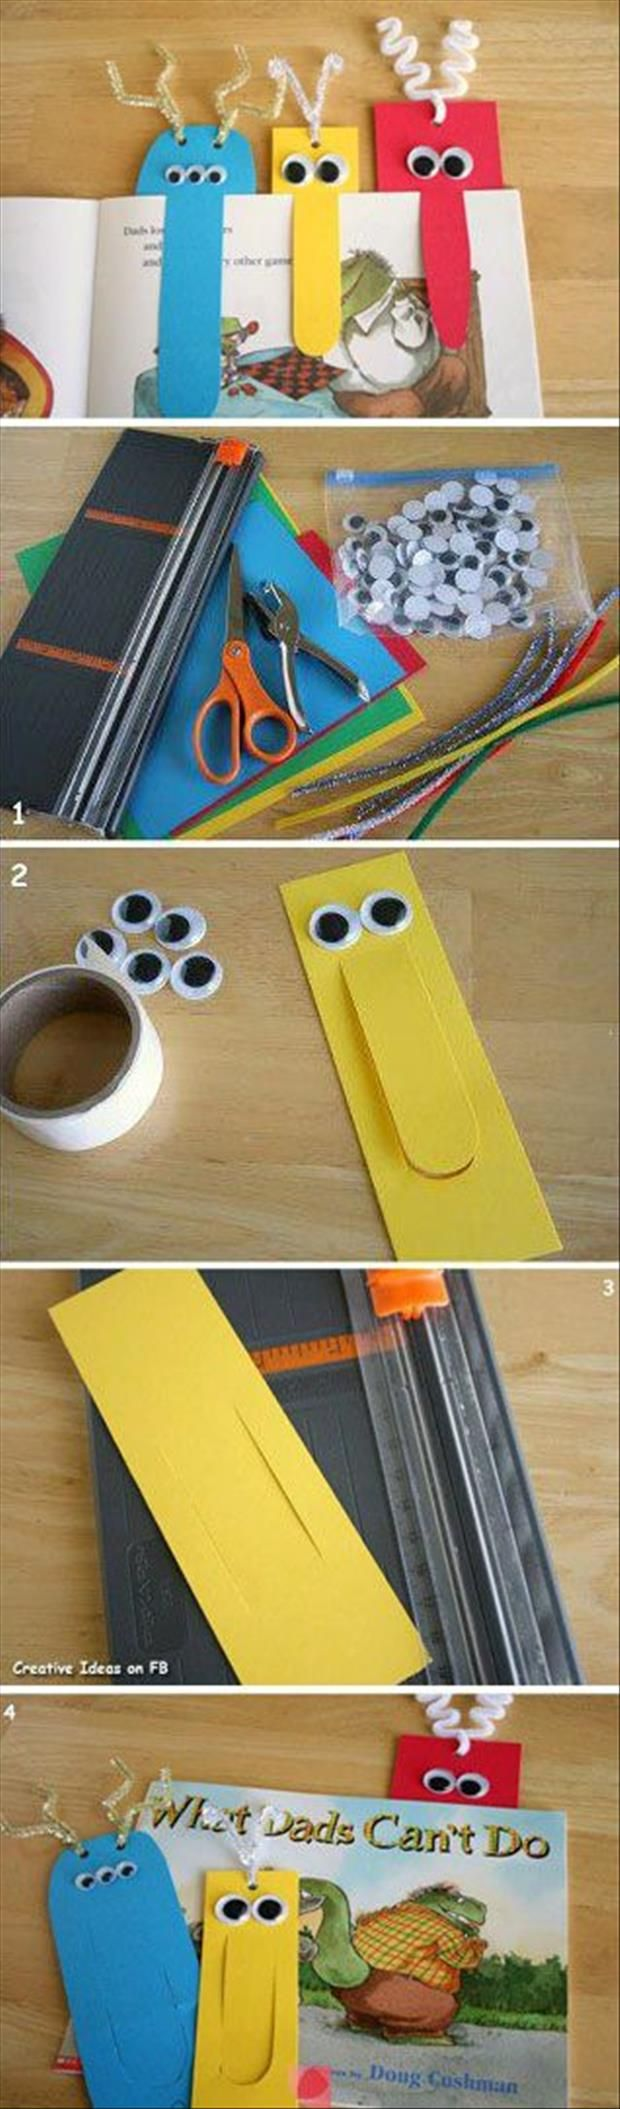 Fun Do It Yourself Craft Ideas – 31 Pics